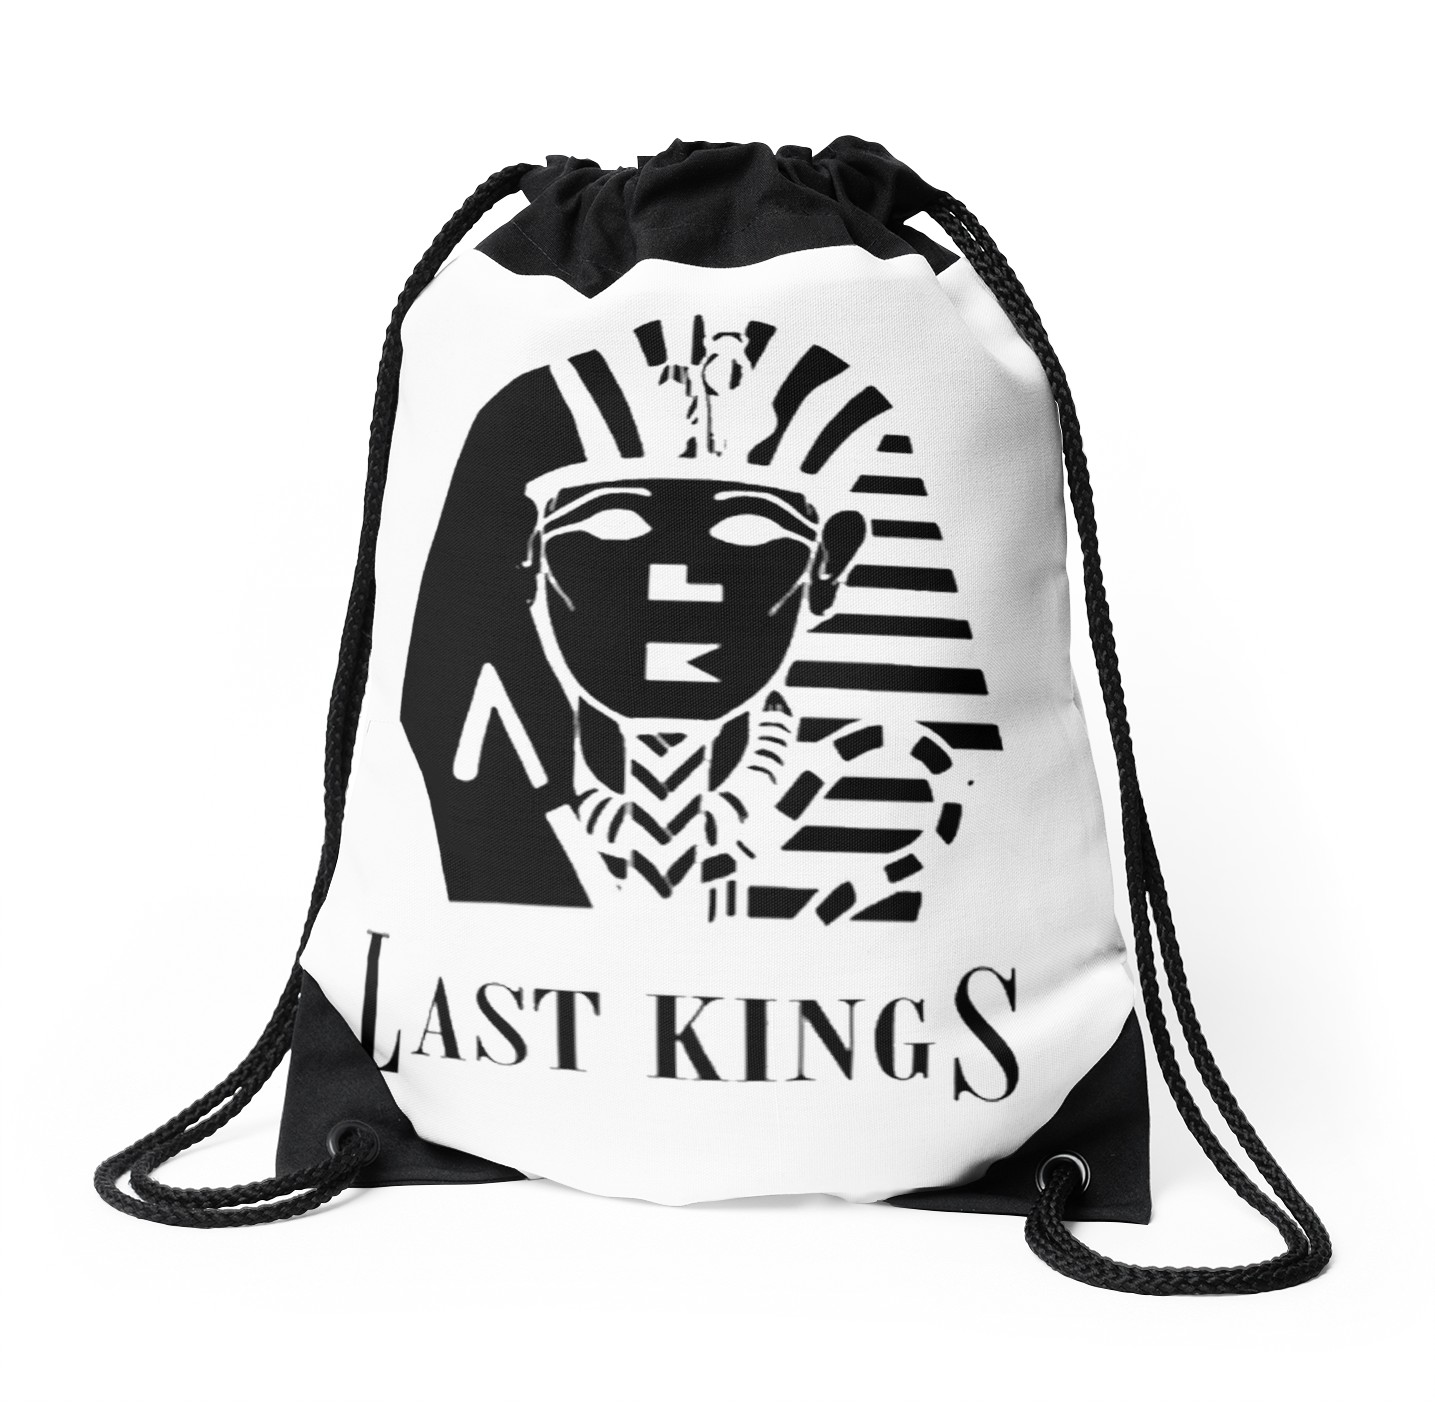 1435x1404 Last Kings Drawstring Bags By Andromax4g99 Redbubble